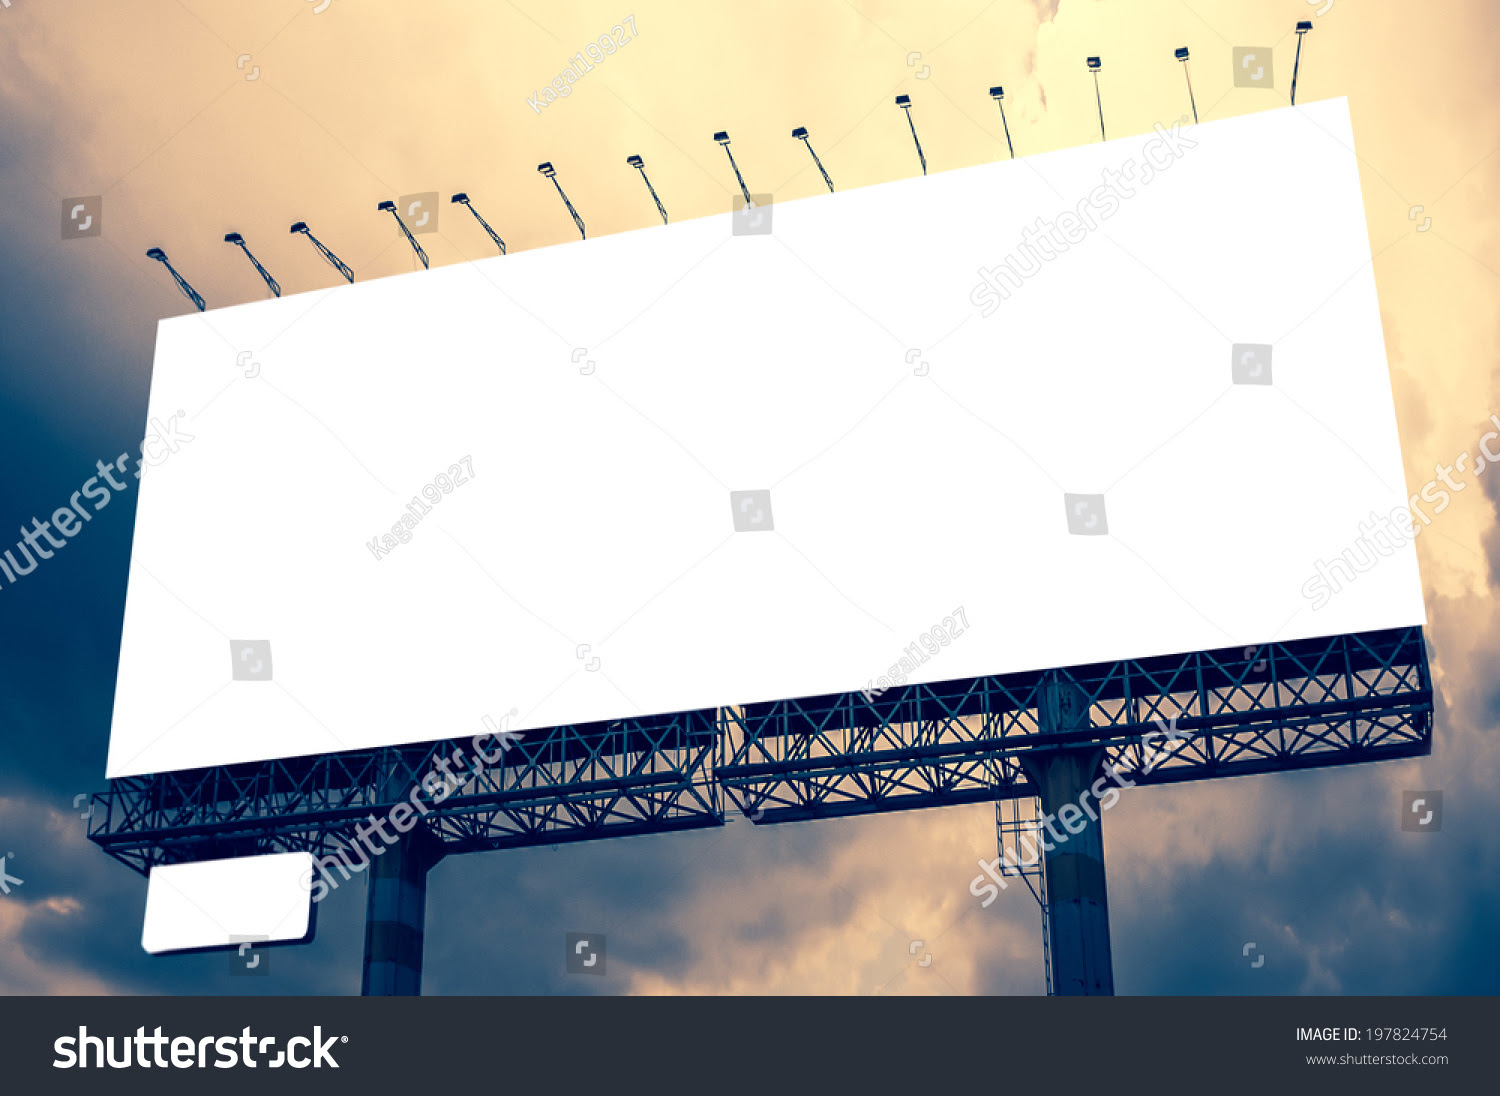 Blank Billboard Advertising Outdoor Public Commercial Stock Photo ...